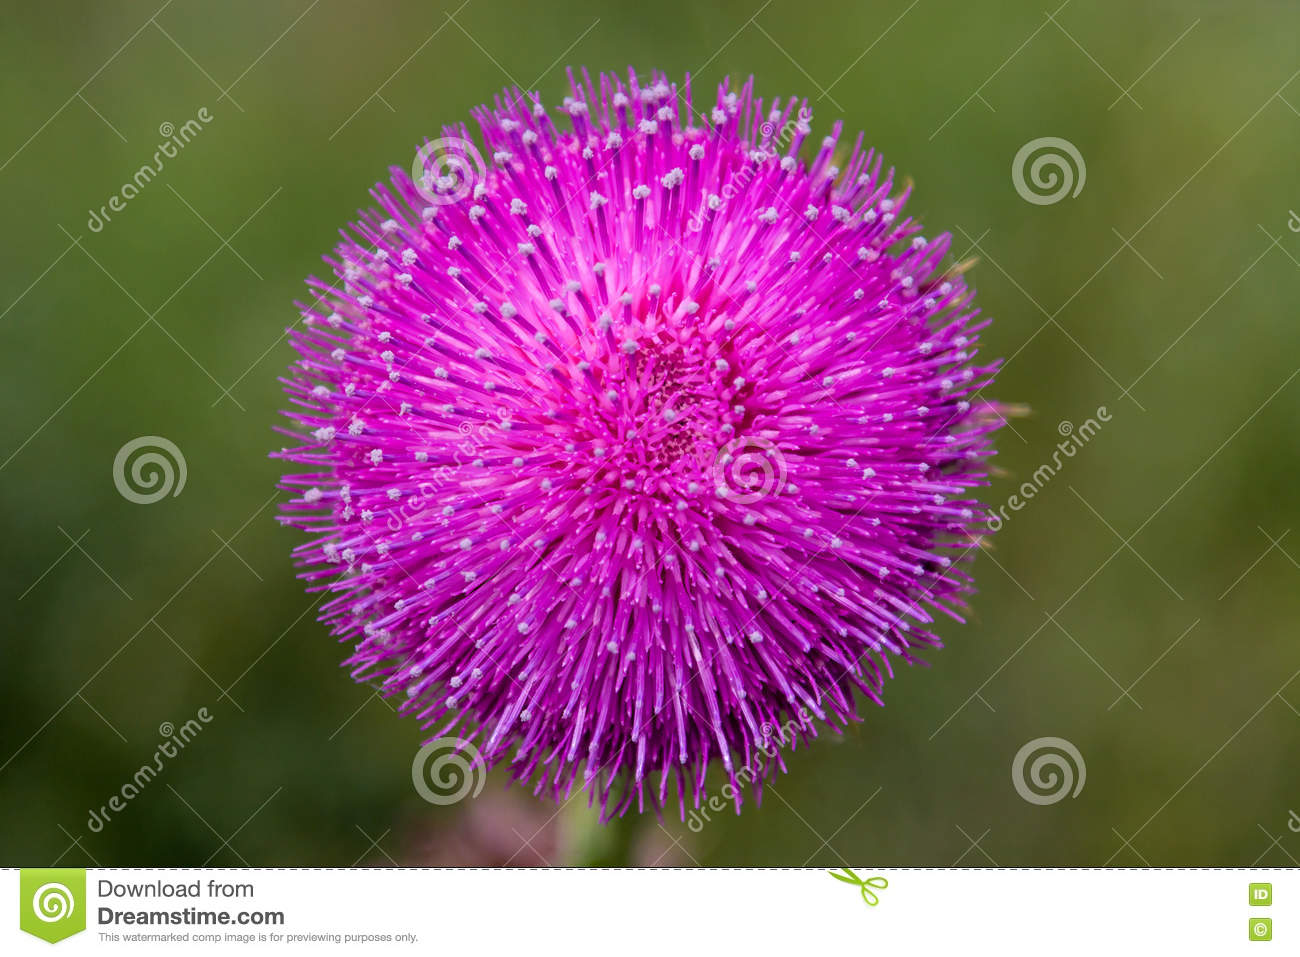 Purple round flower with white capped petals stock photo image of purple round flower with white capped petals mightylinksfo